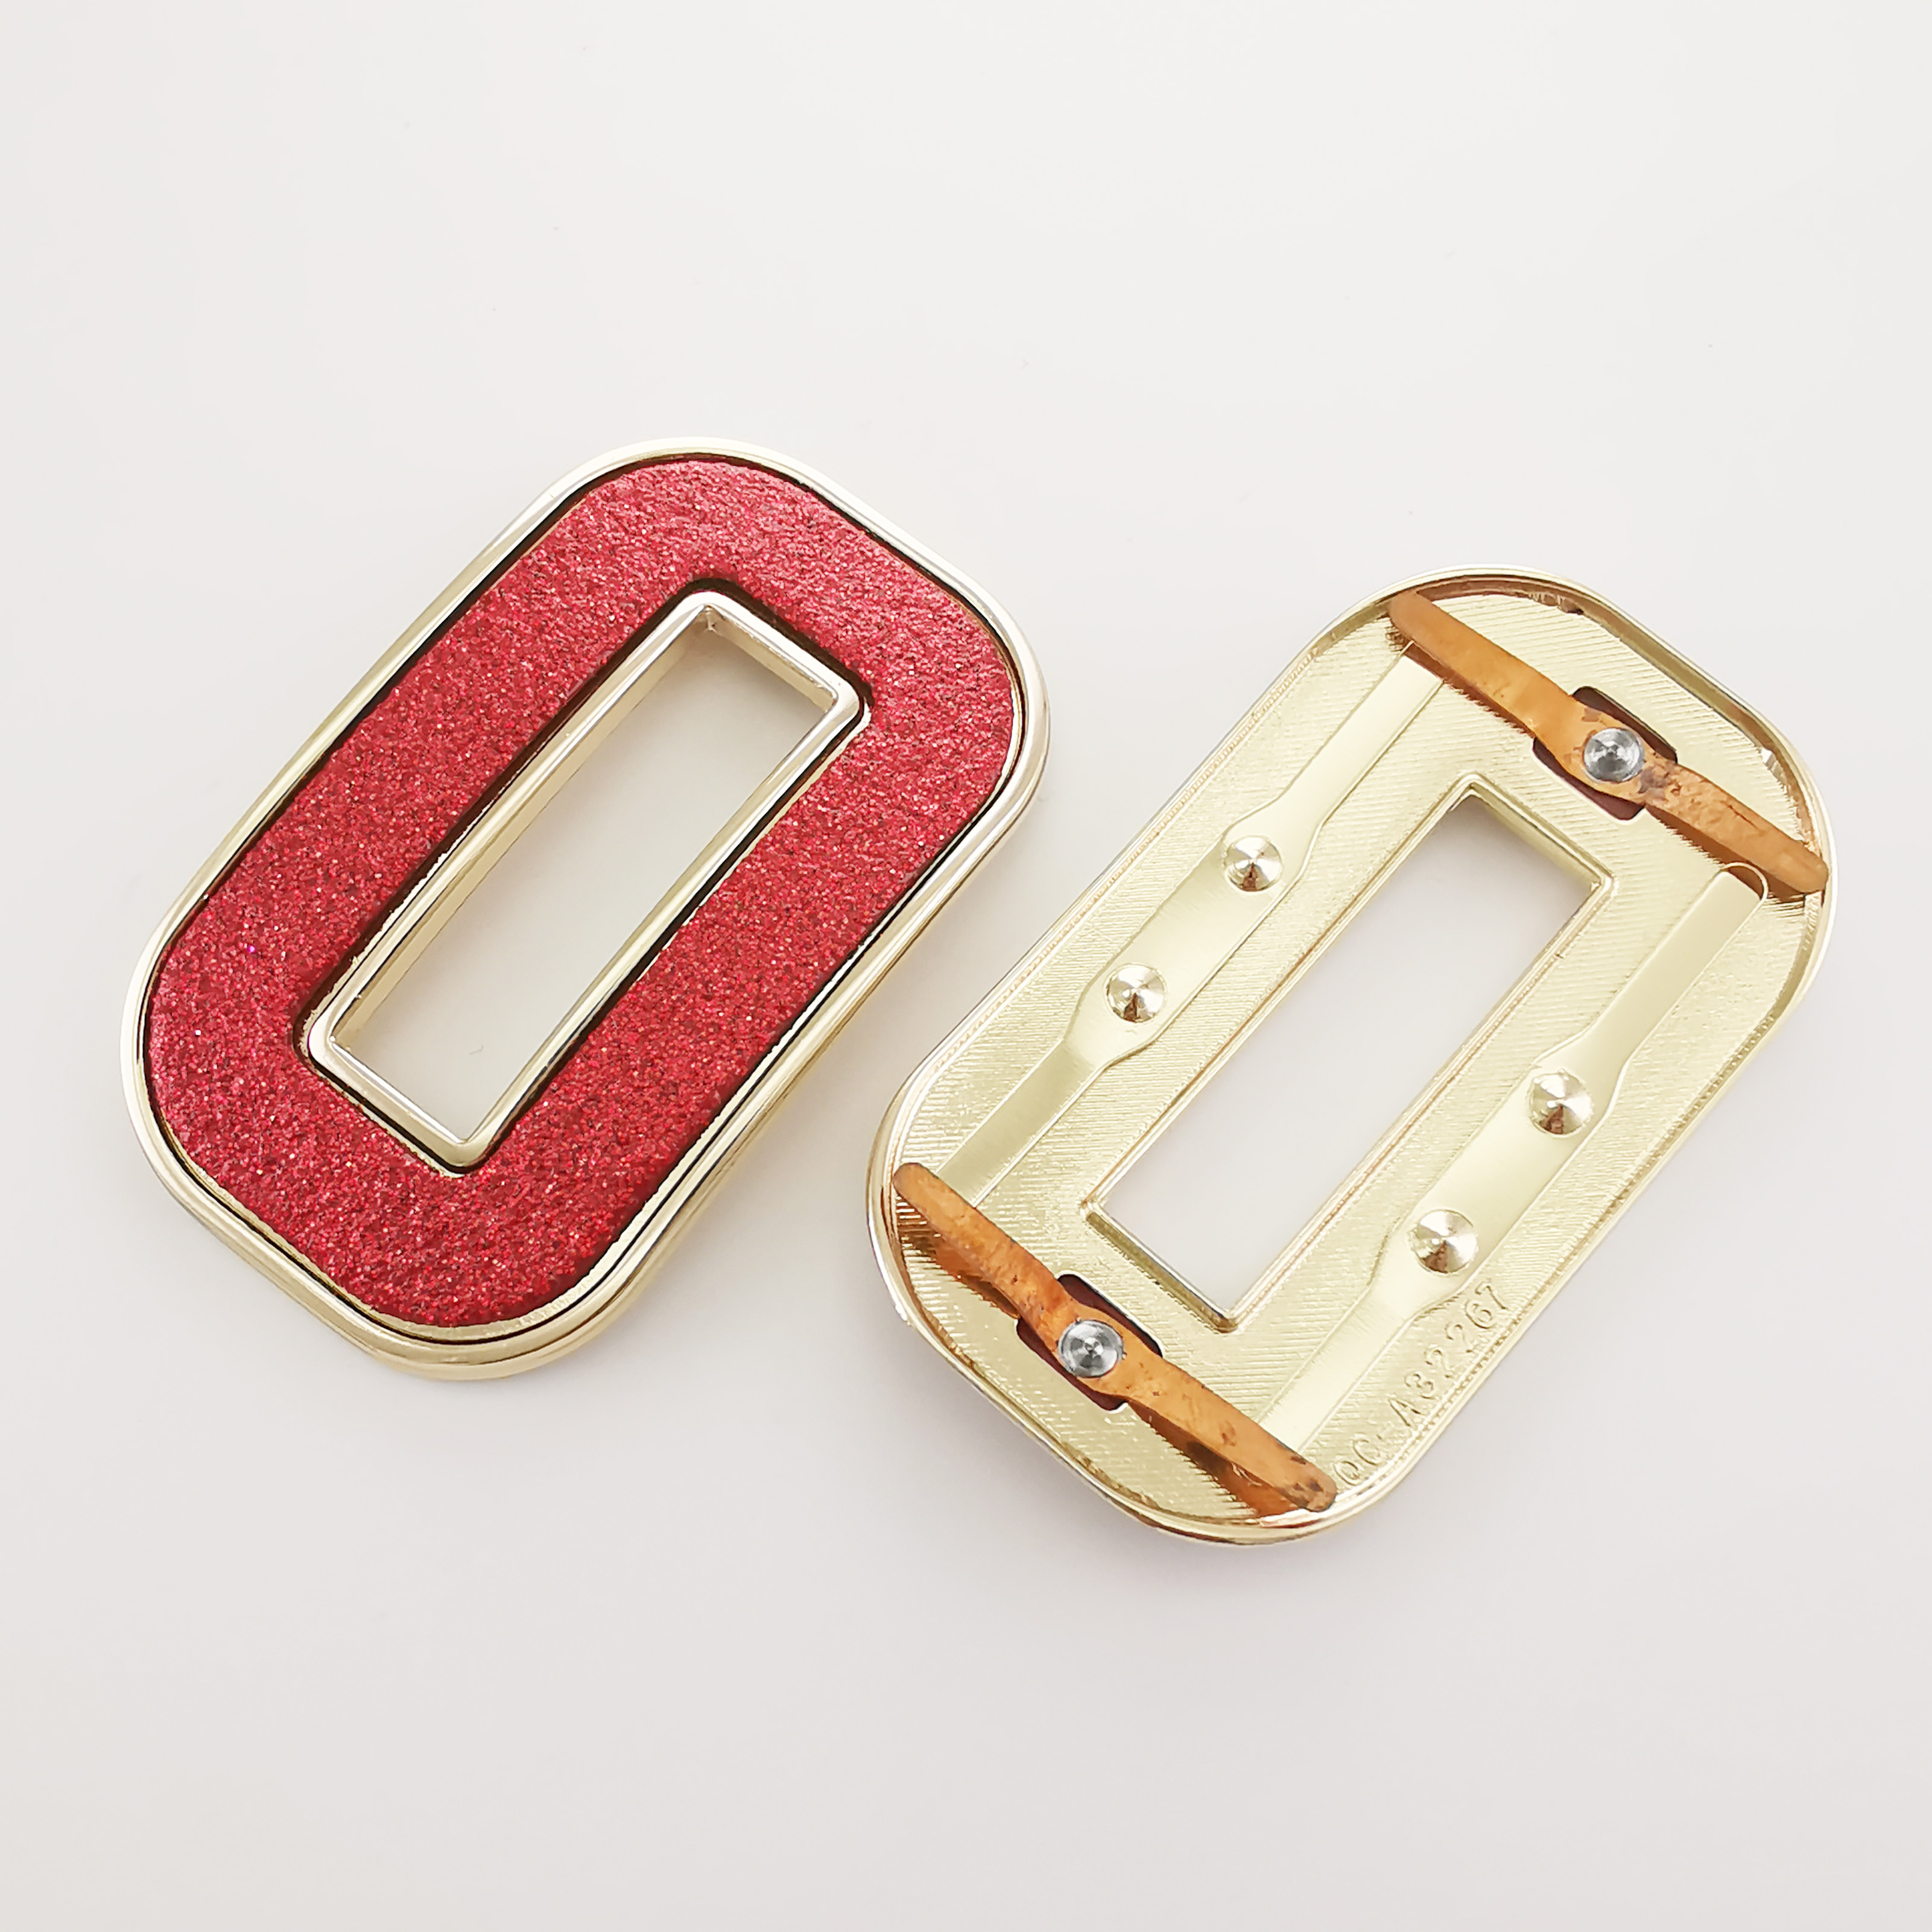 SHOE BUCKLE,SHOE BUCKLE  DECORATION ACCESSORIES,SHOE DECORATION